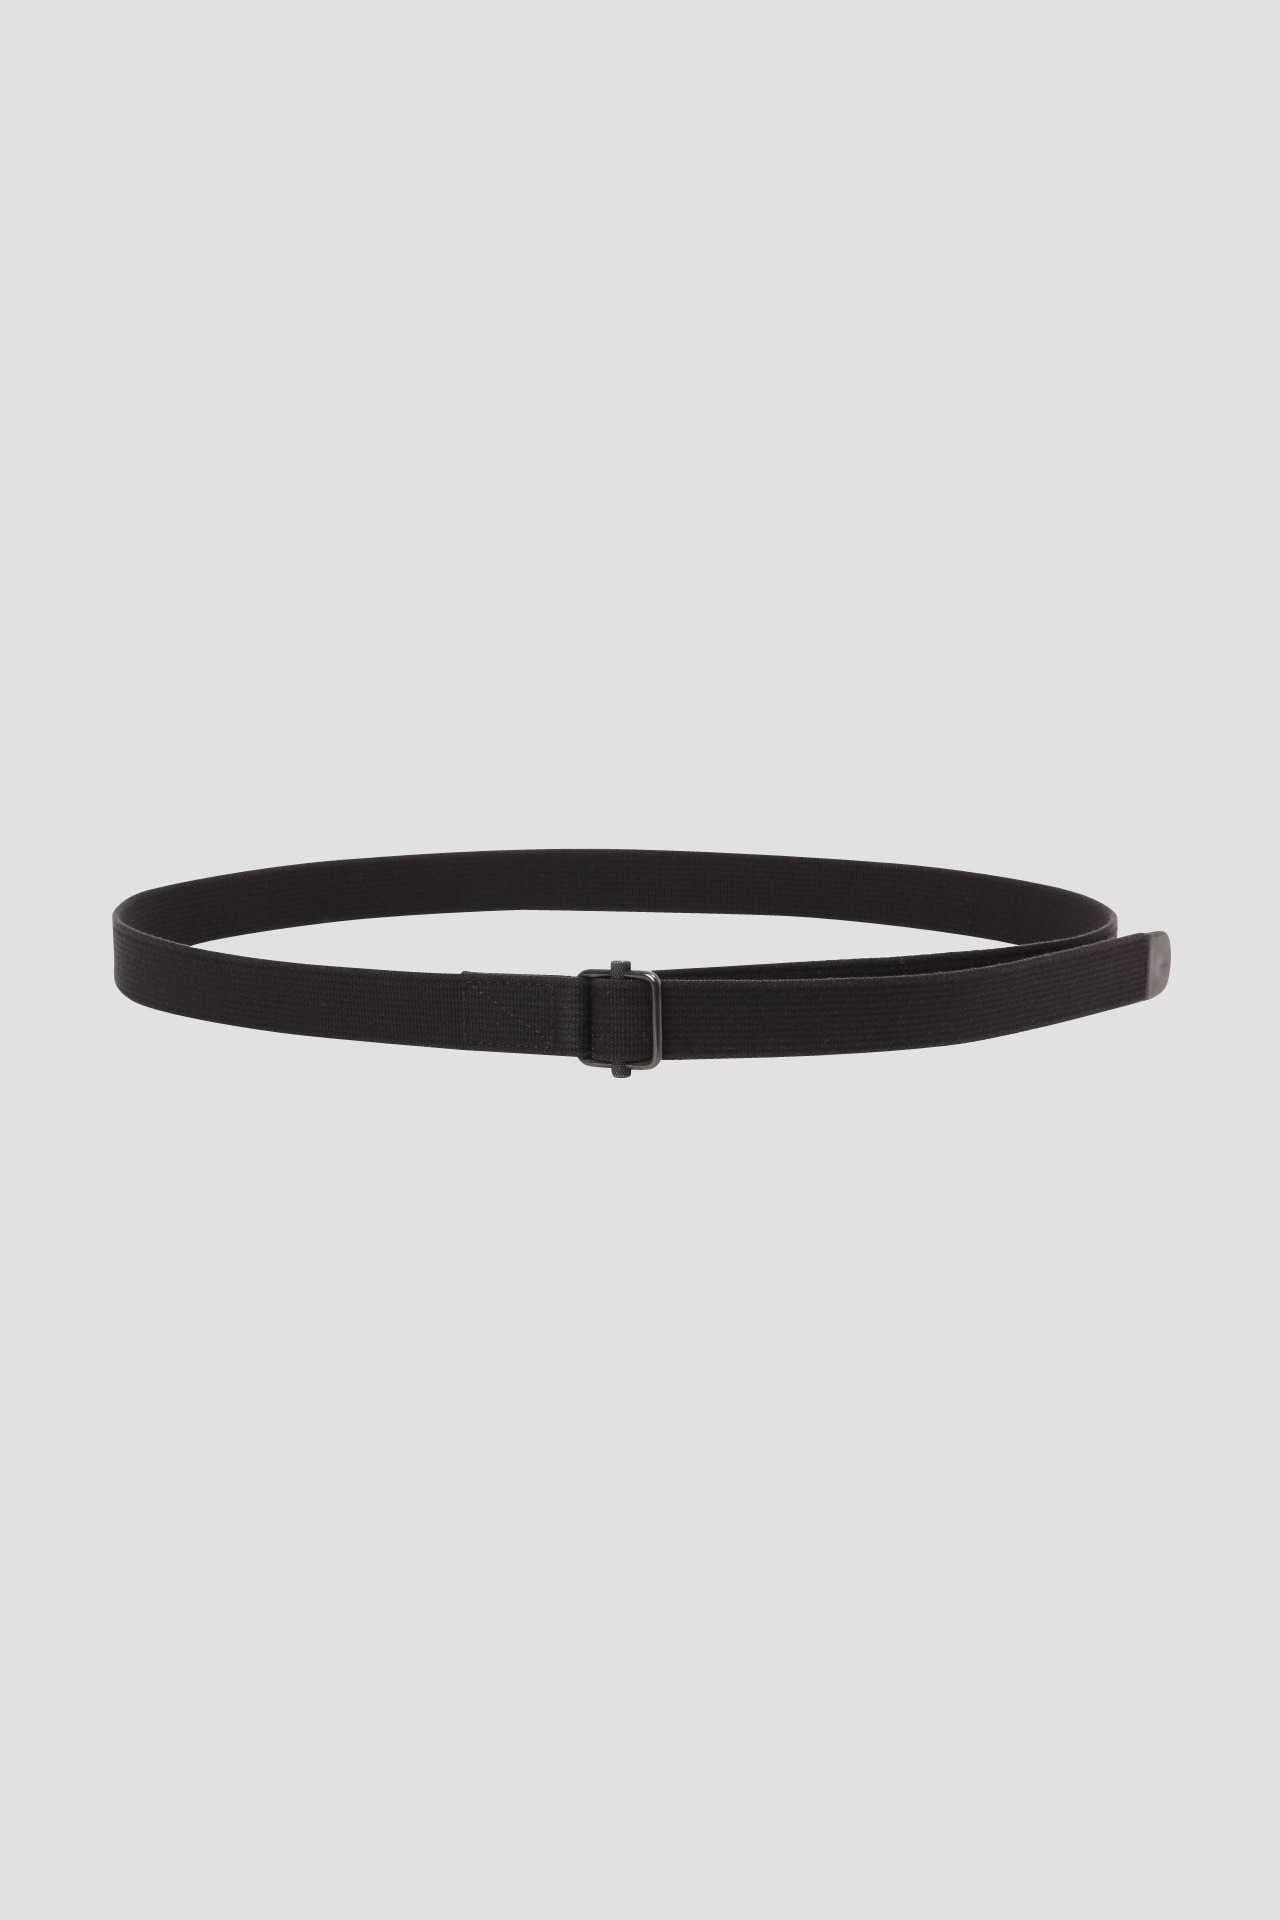 NARROW MILITARY BELT5